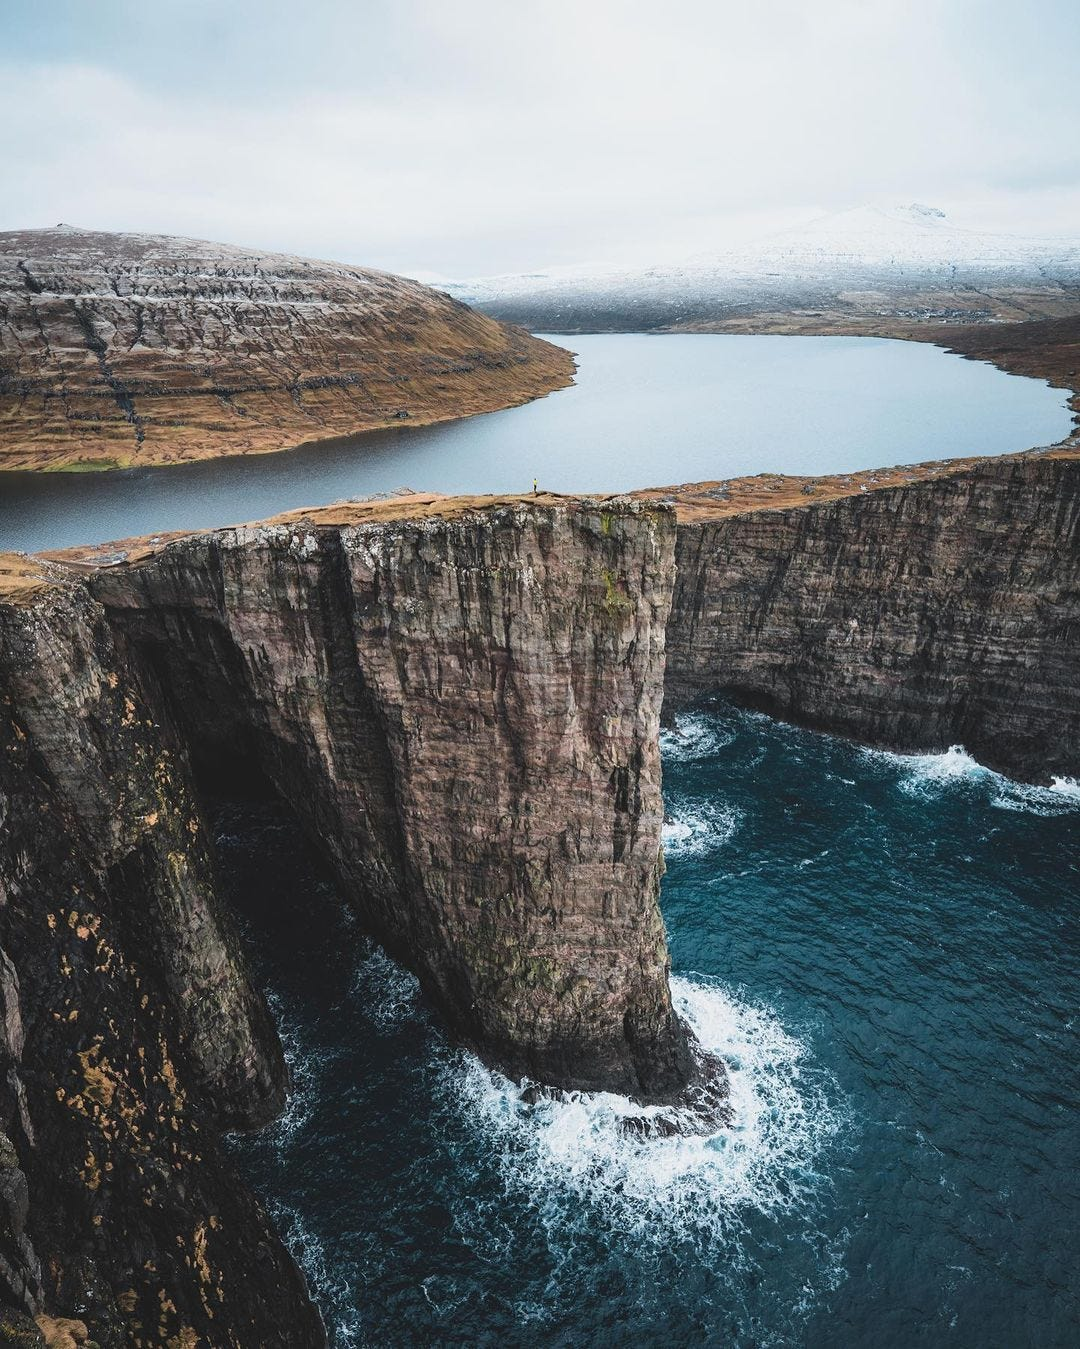 Cliff with lake on top and ocean below